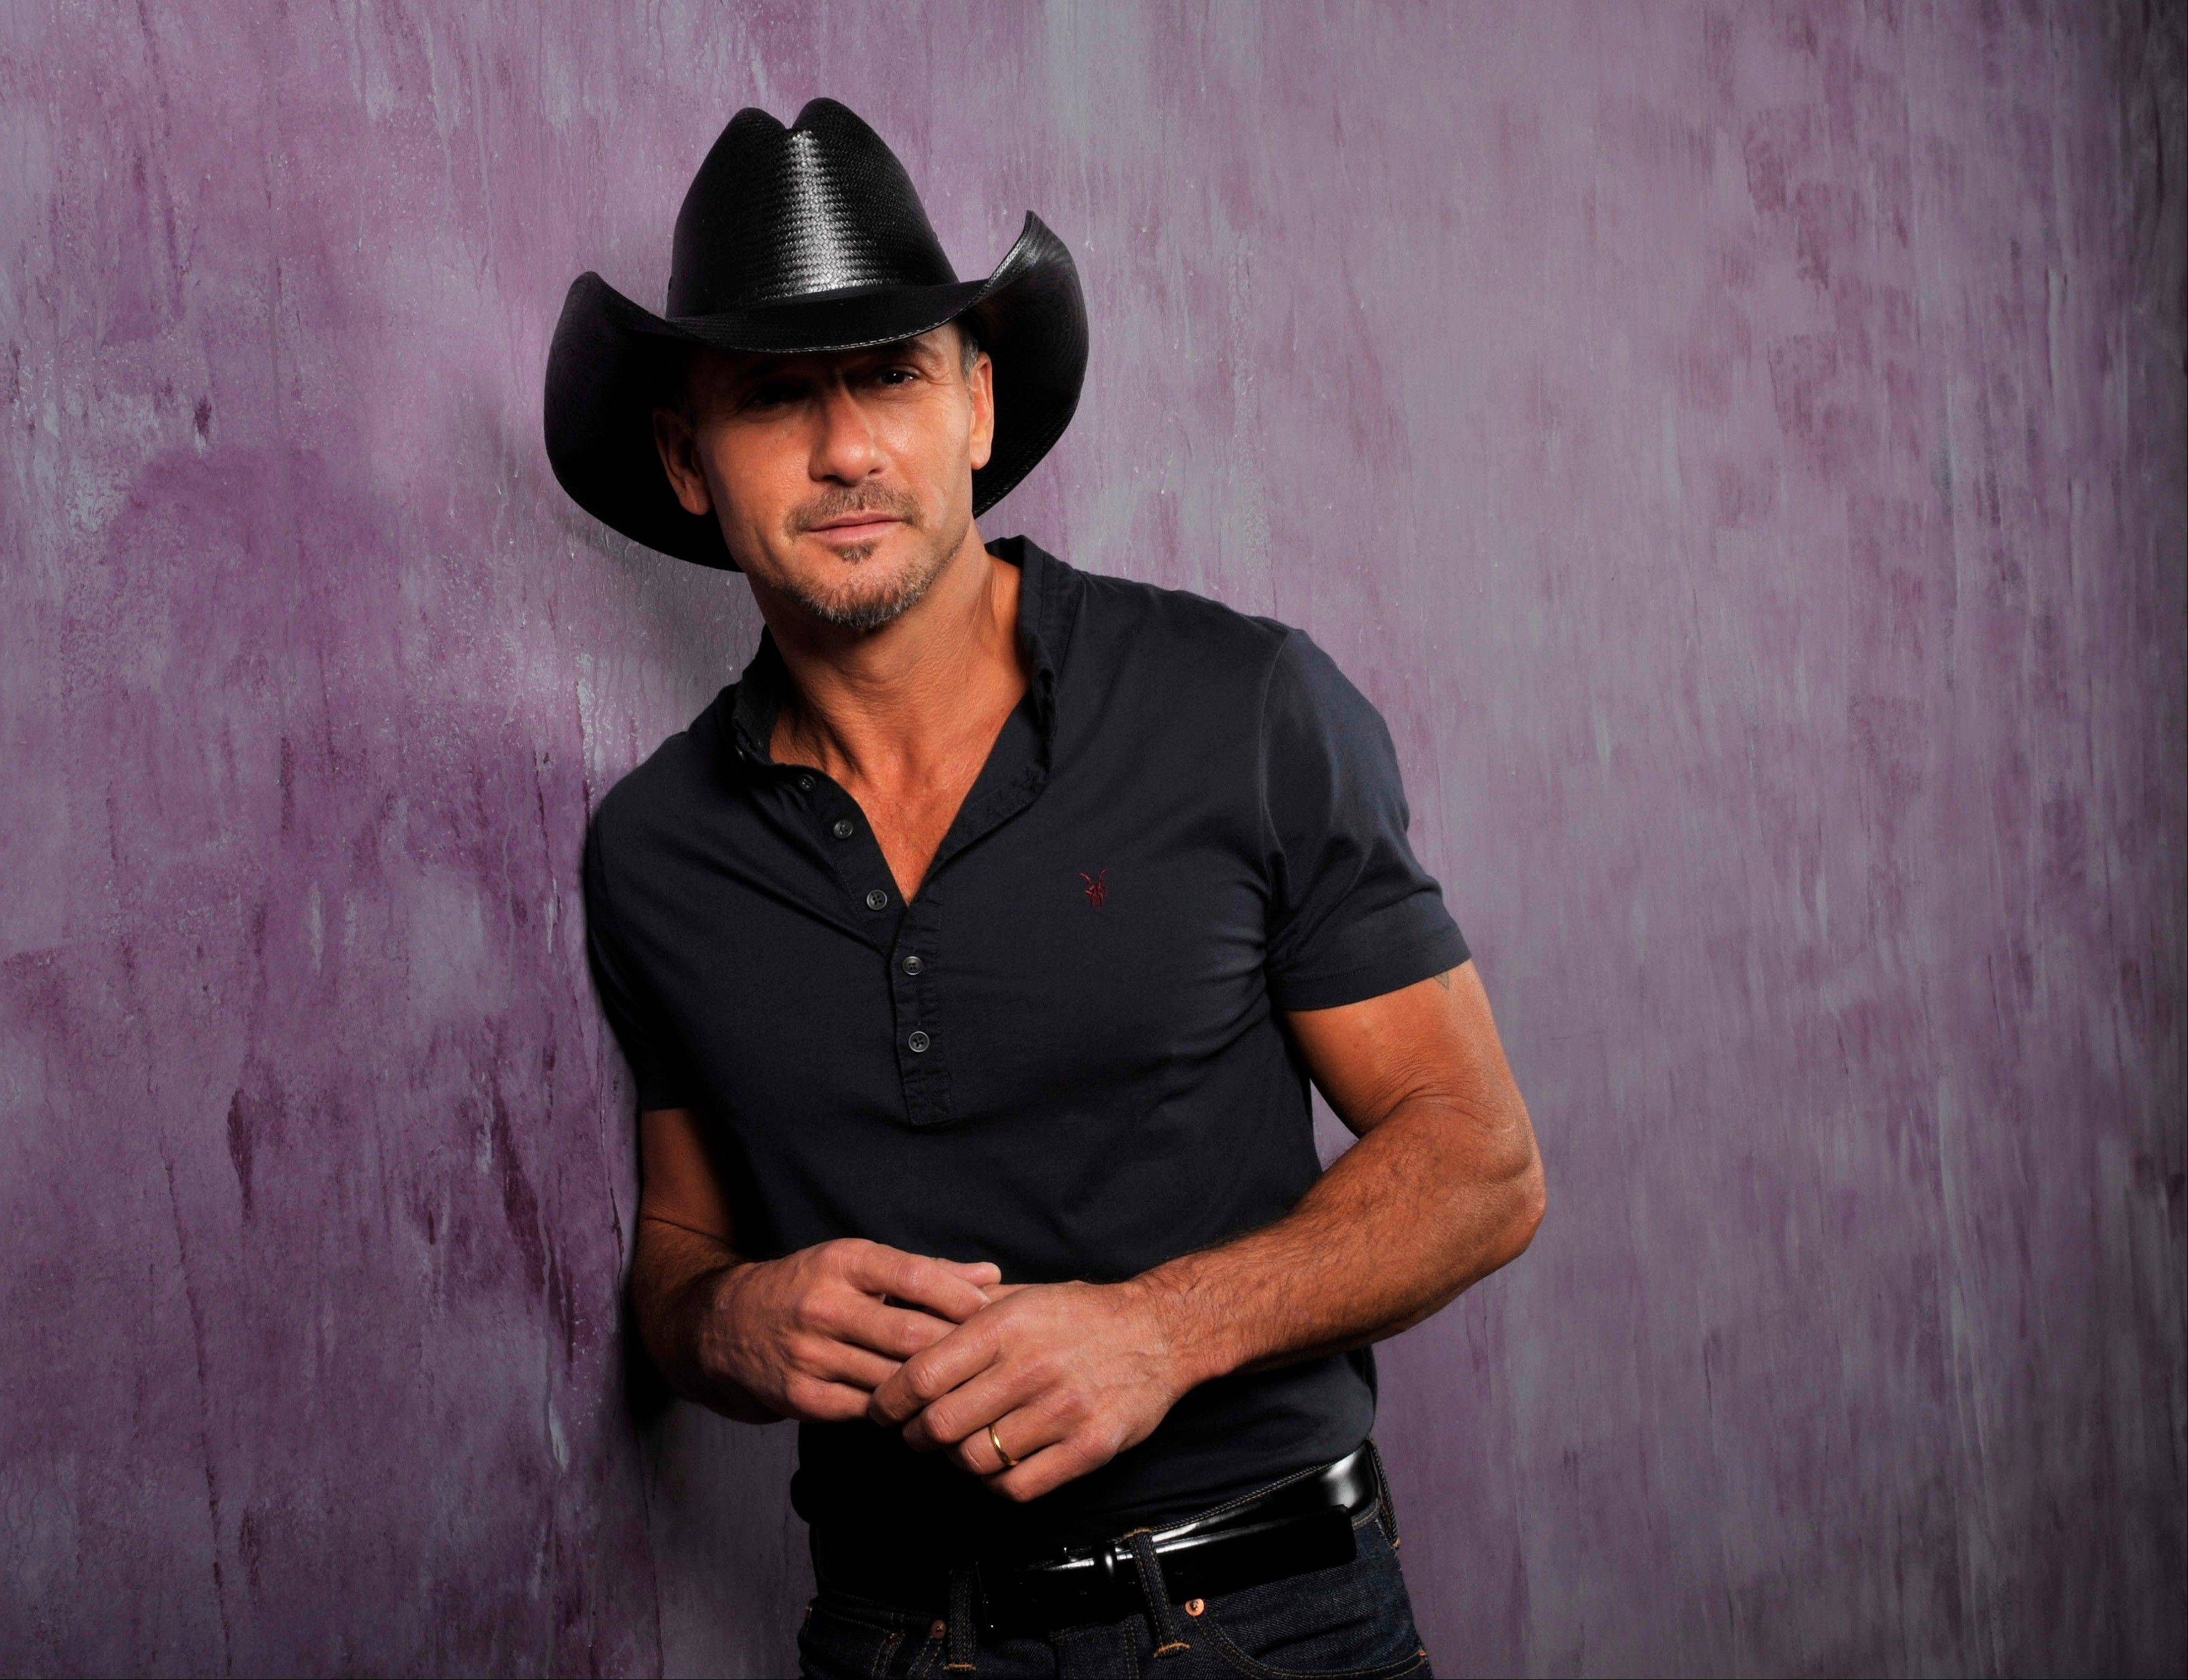 McGraw enters new phase in his music